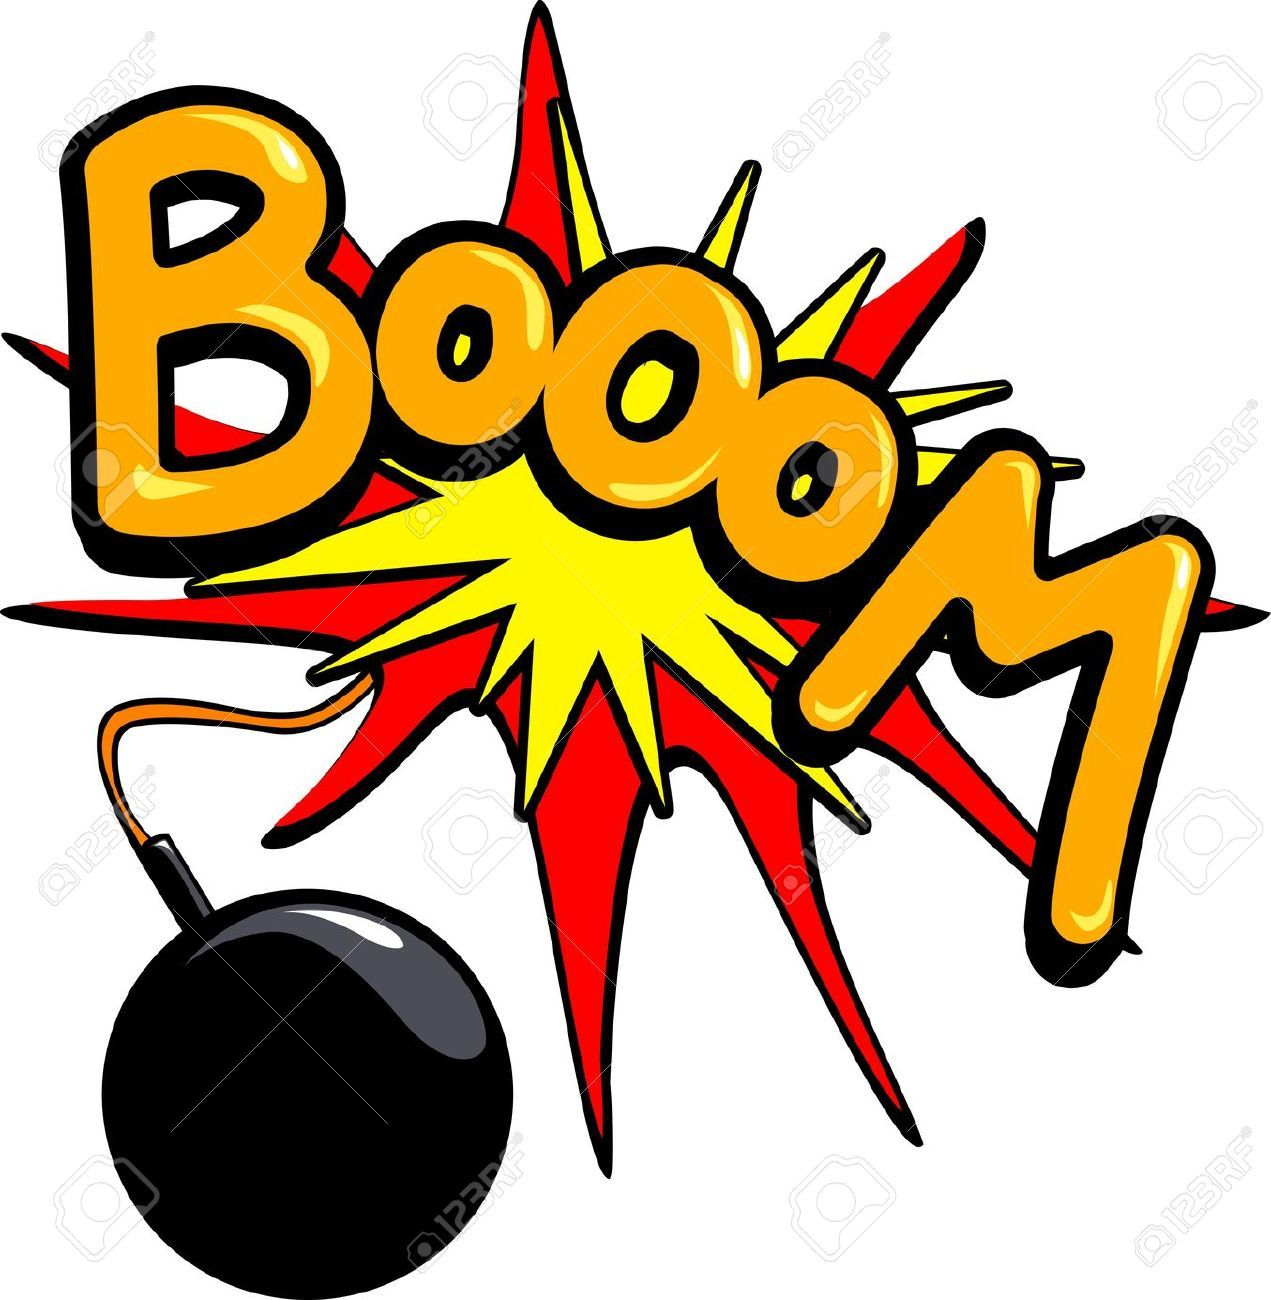 9407473-A-bomb-explodes-in-a-loud-round-Boom-Stock-Vector-comics.jpg